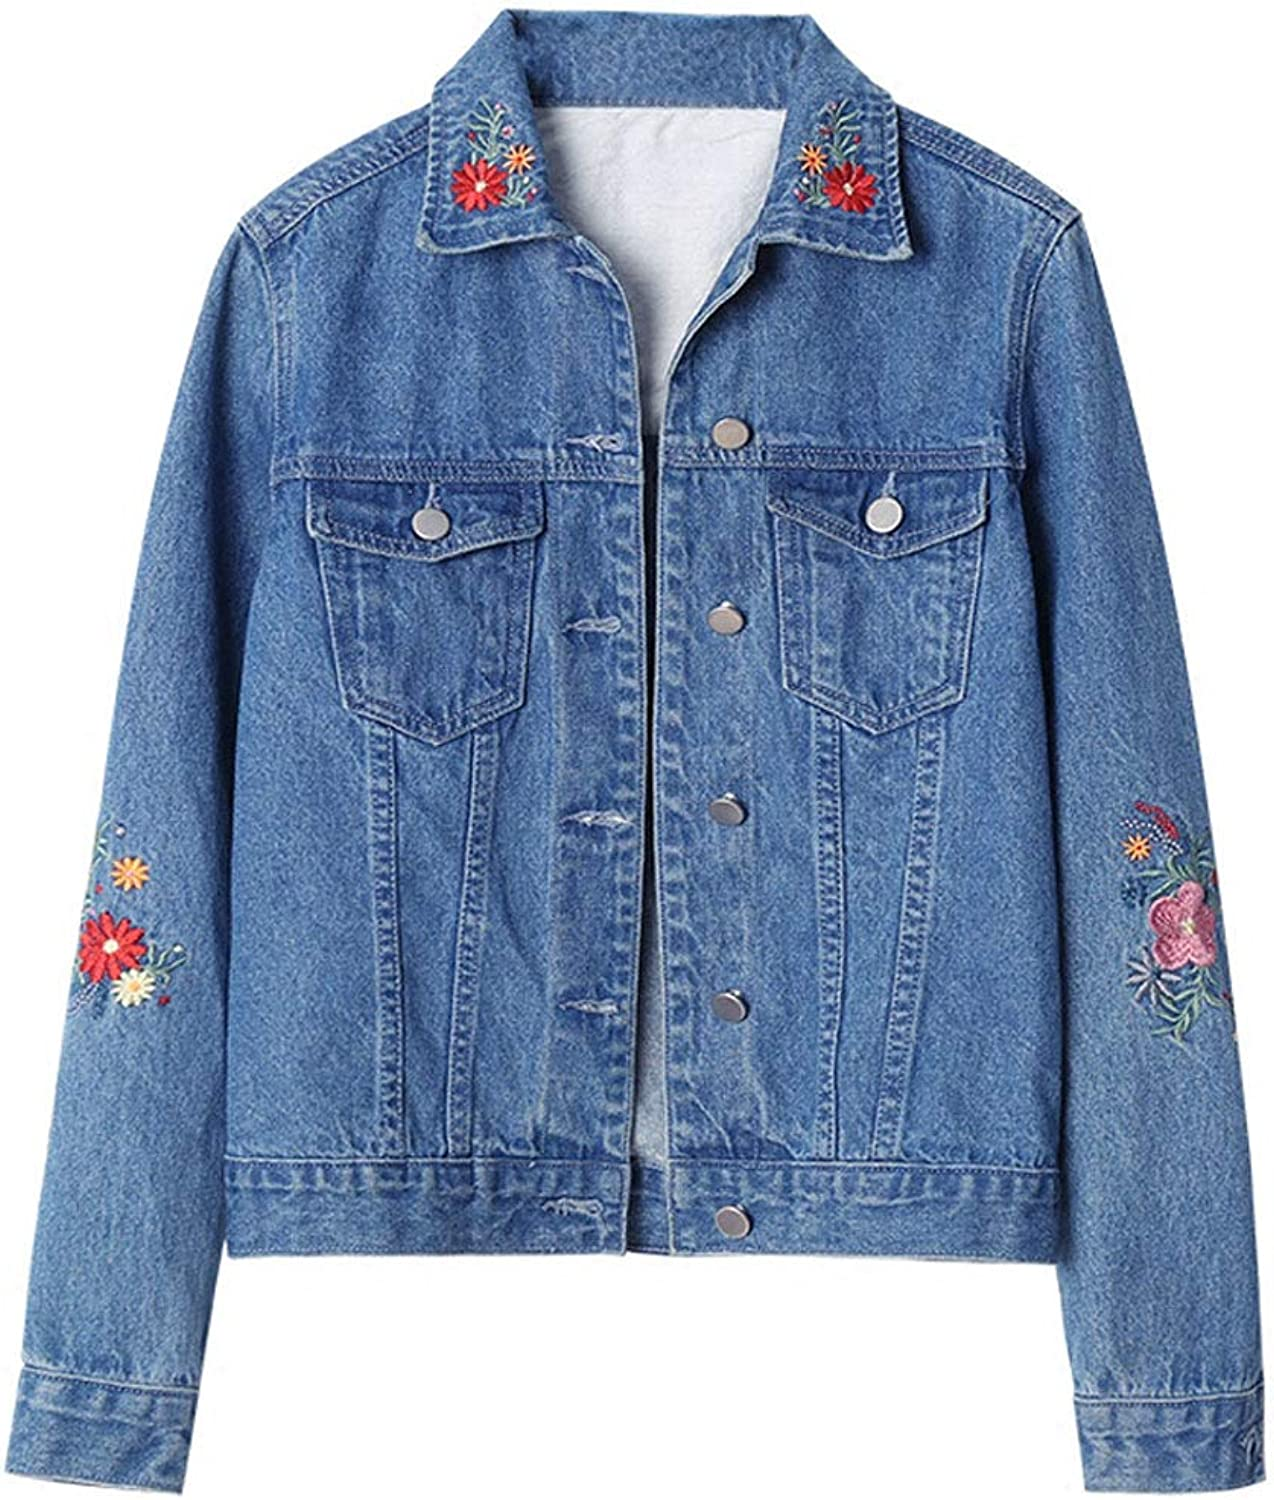 Women's Short Paragraph Denim Jacket Fashion Slim Embroidered Jean Jacket Coats Long Sleeve Casual Coat (color   bluee, Size   L)